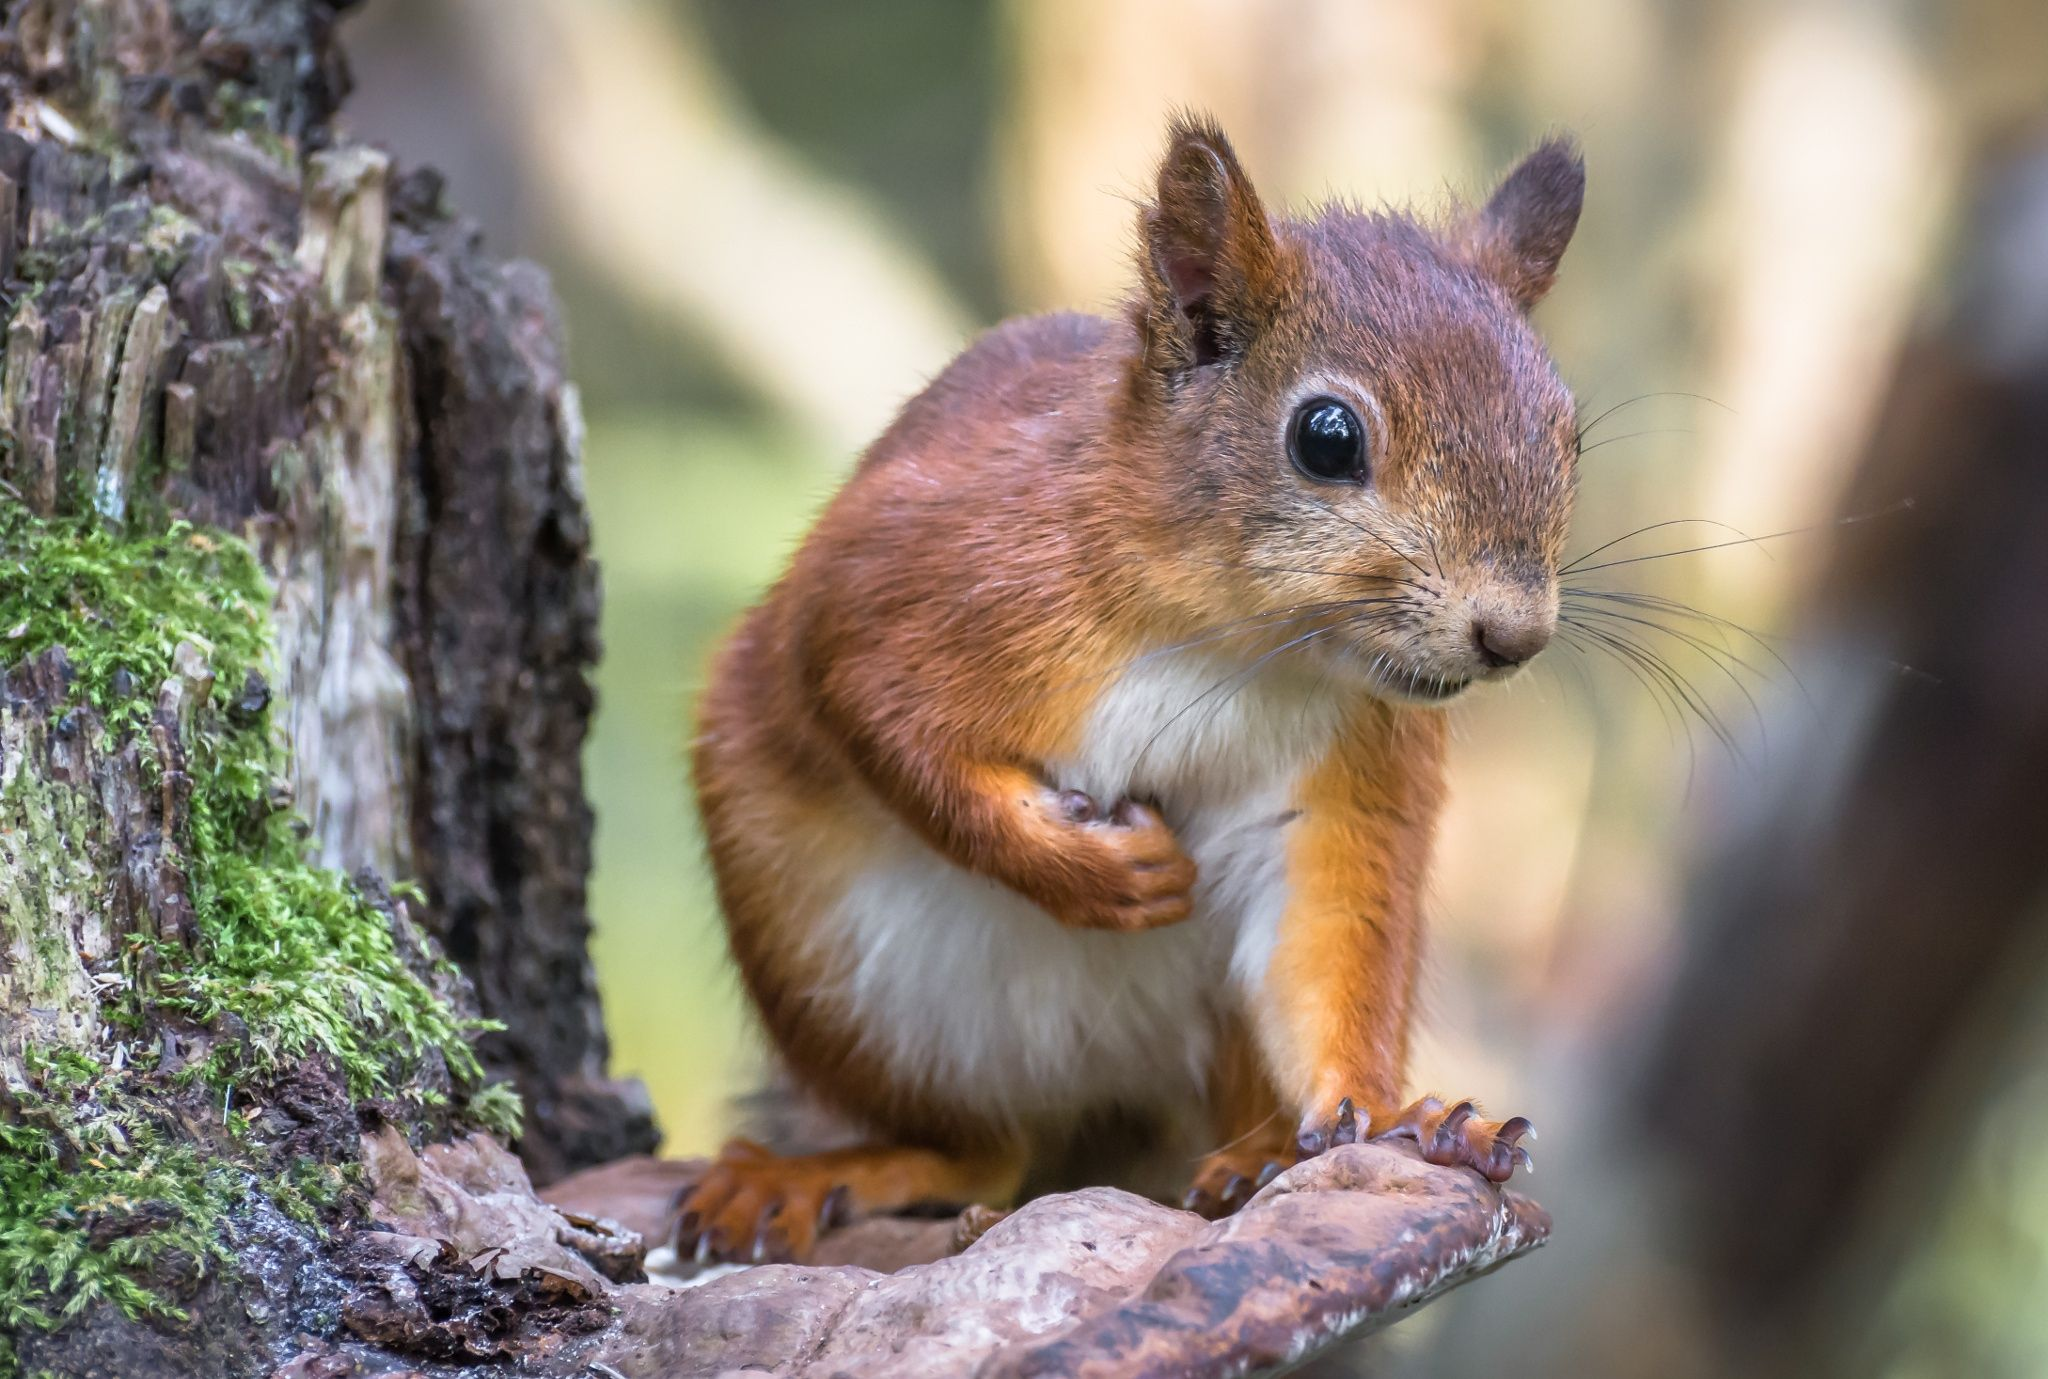 Young red squirrel by Hannu Rämä on 500px